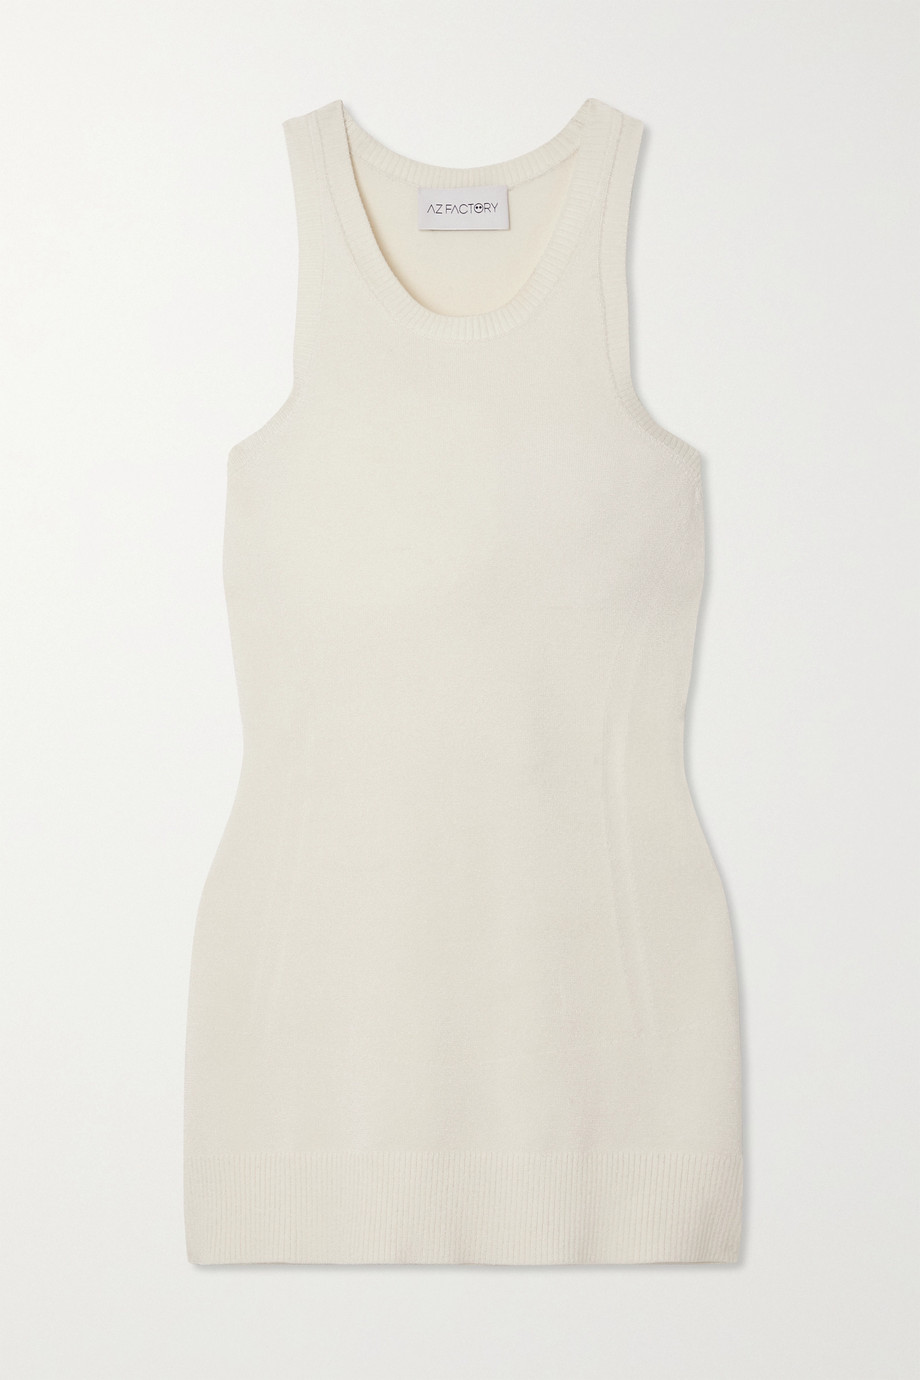 AZ FACTORY MyBody stretch-knit tank